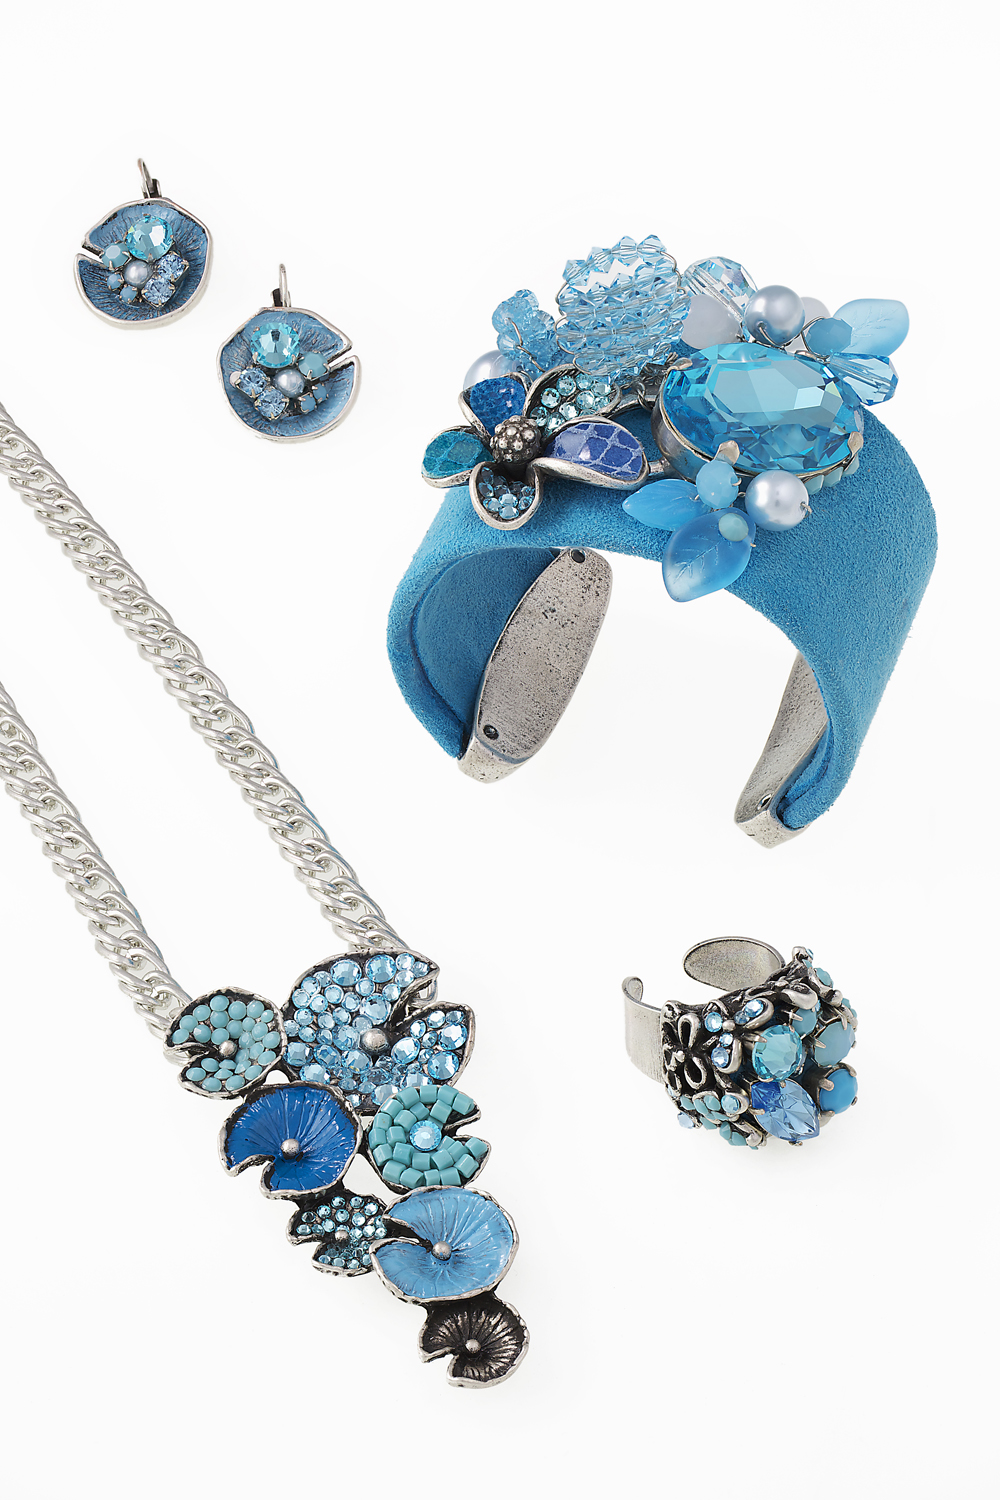 029_turquoise flower cuff and necklace set.jpg